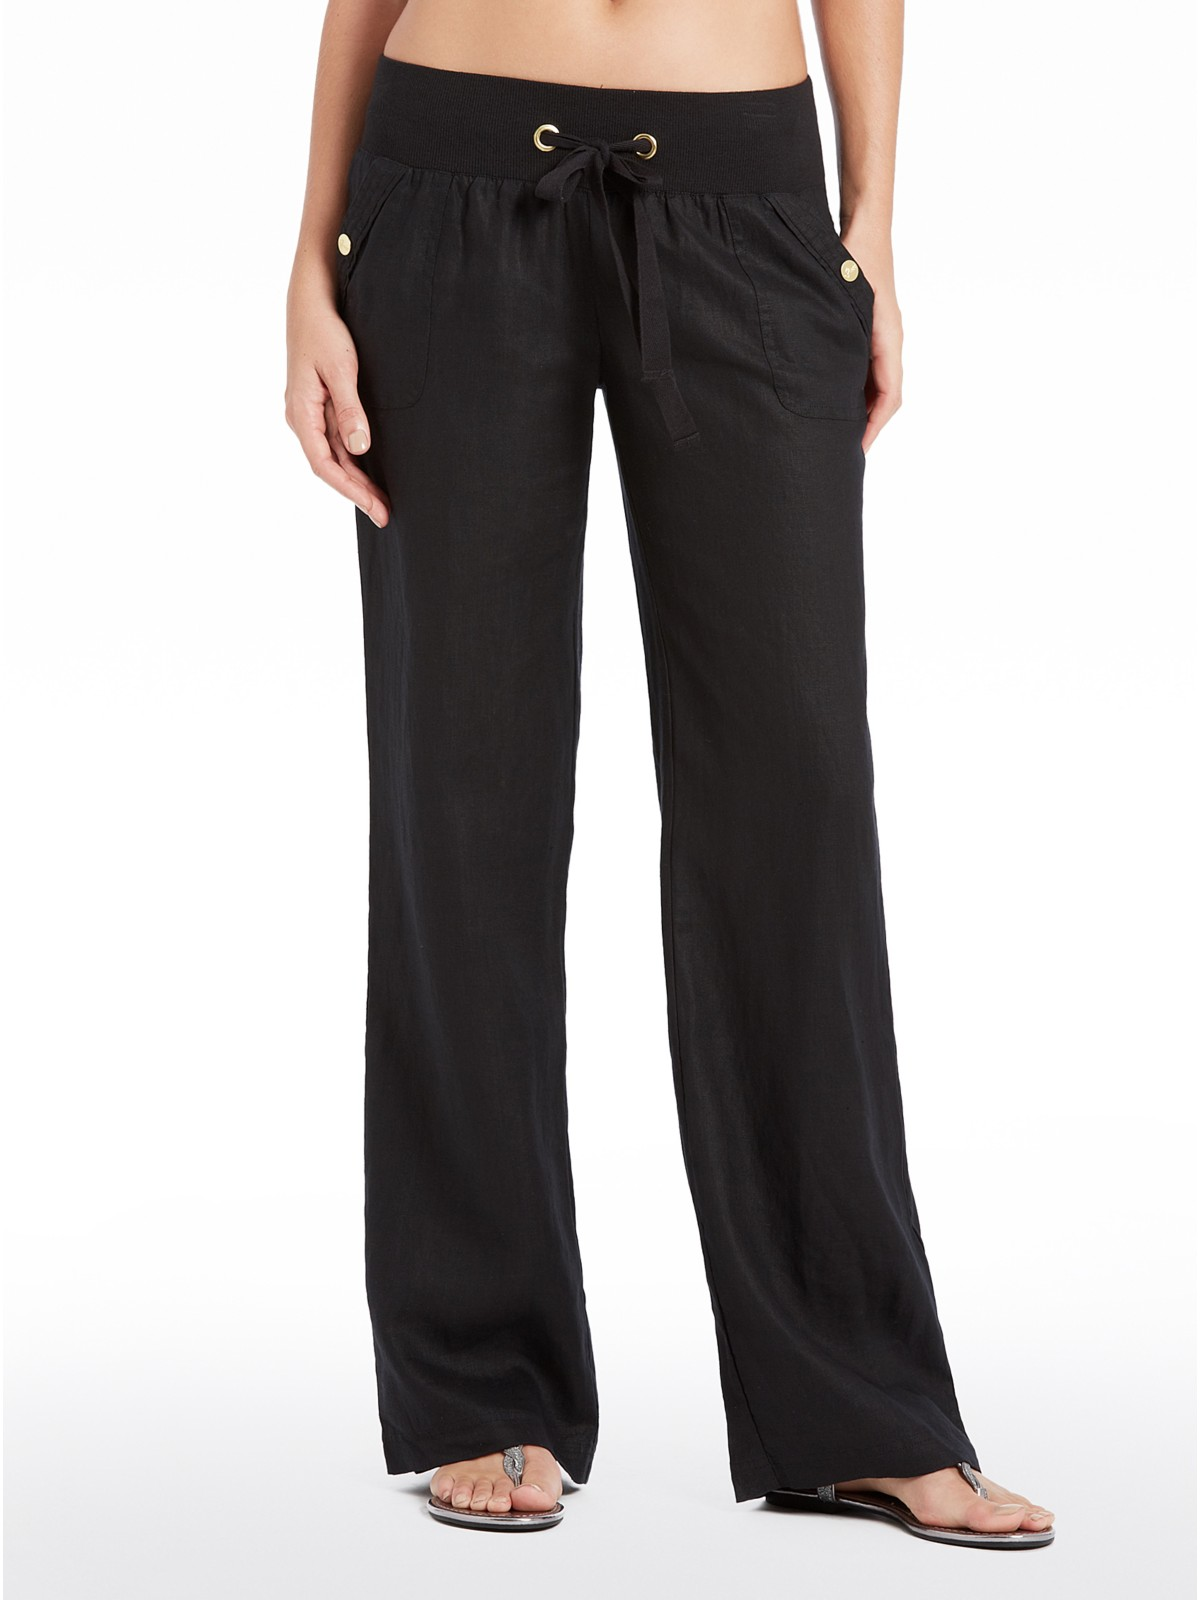 Innovative Details About GUESS Women39s Teagan Linen Pants